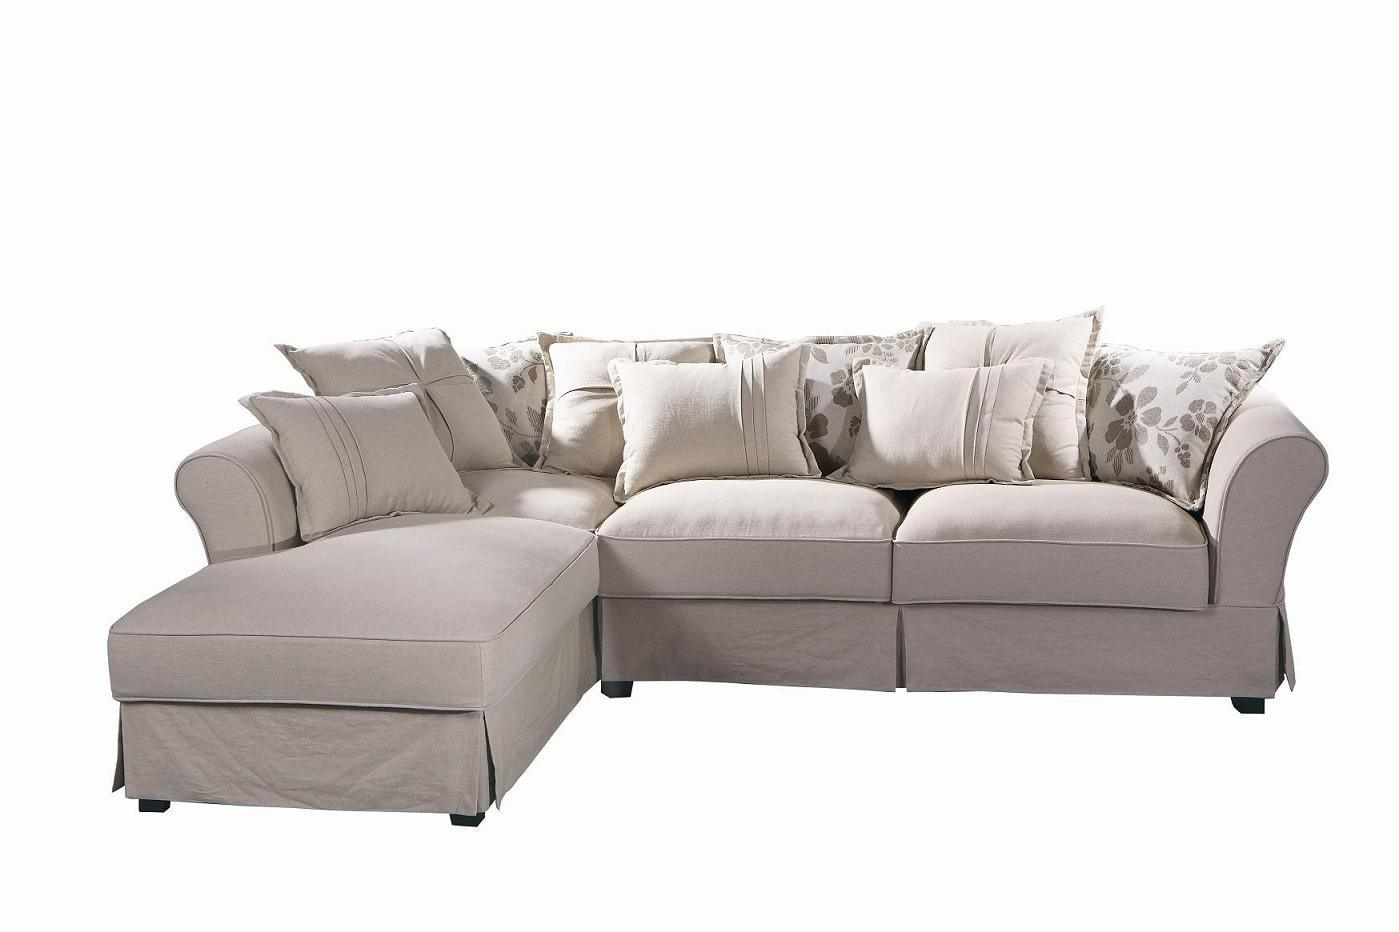 China fabric sectional sofa rl2026 china sofa fabric sofa for Sofa sofa furniture